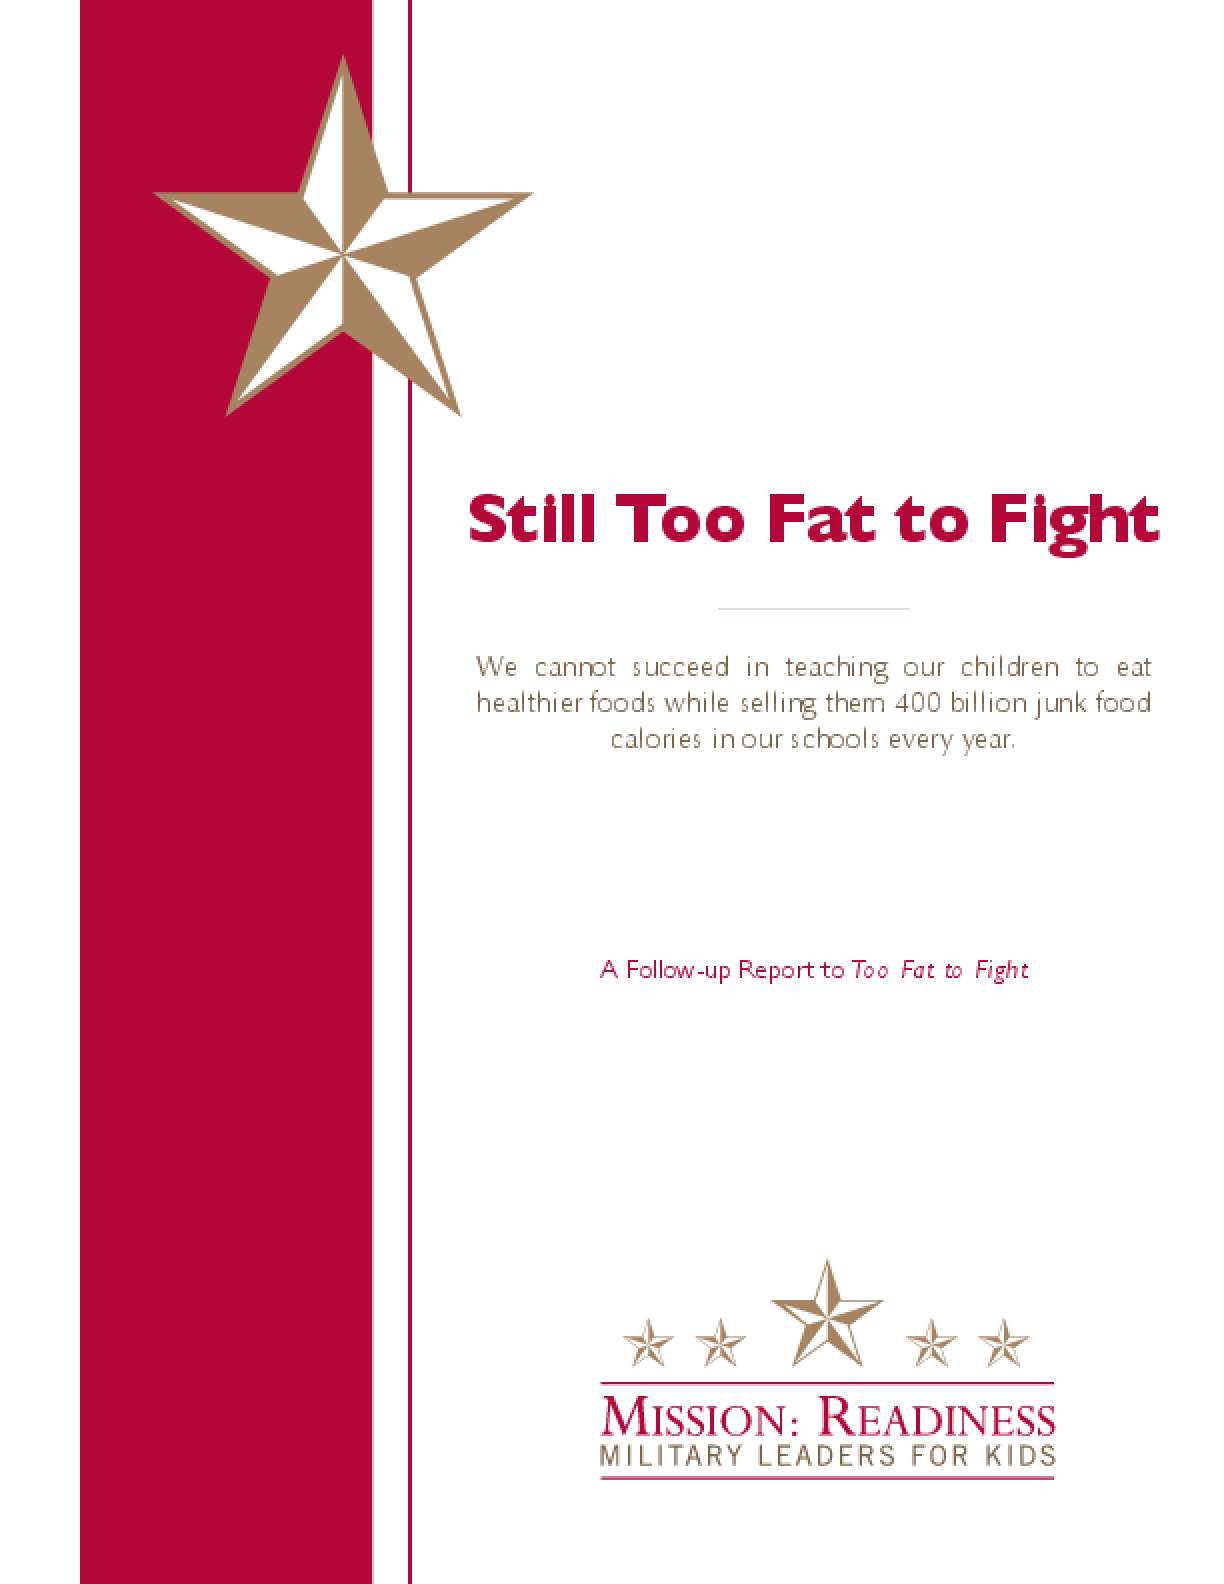 Still Too Fat to Fight